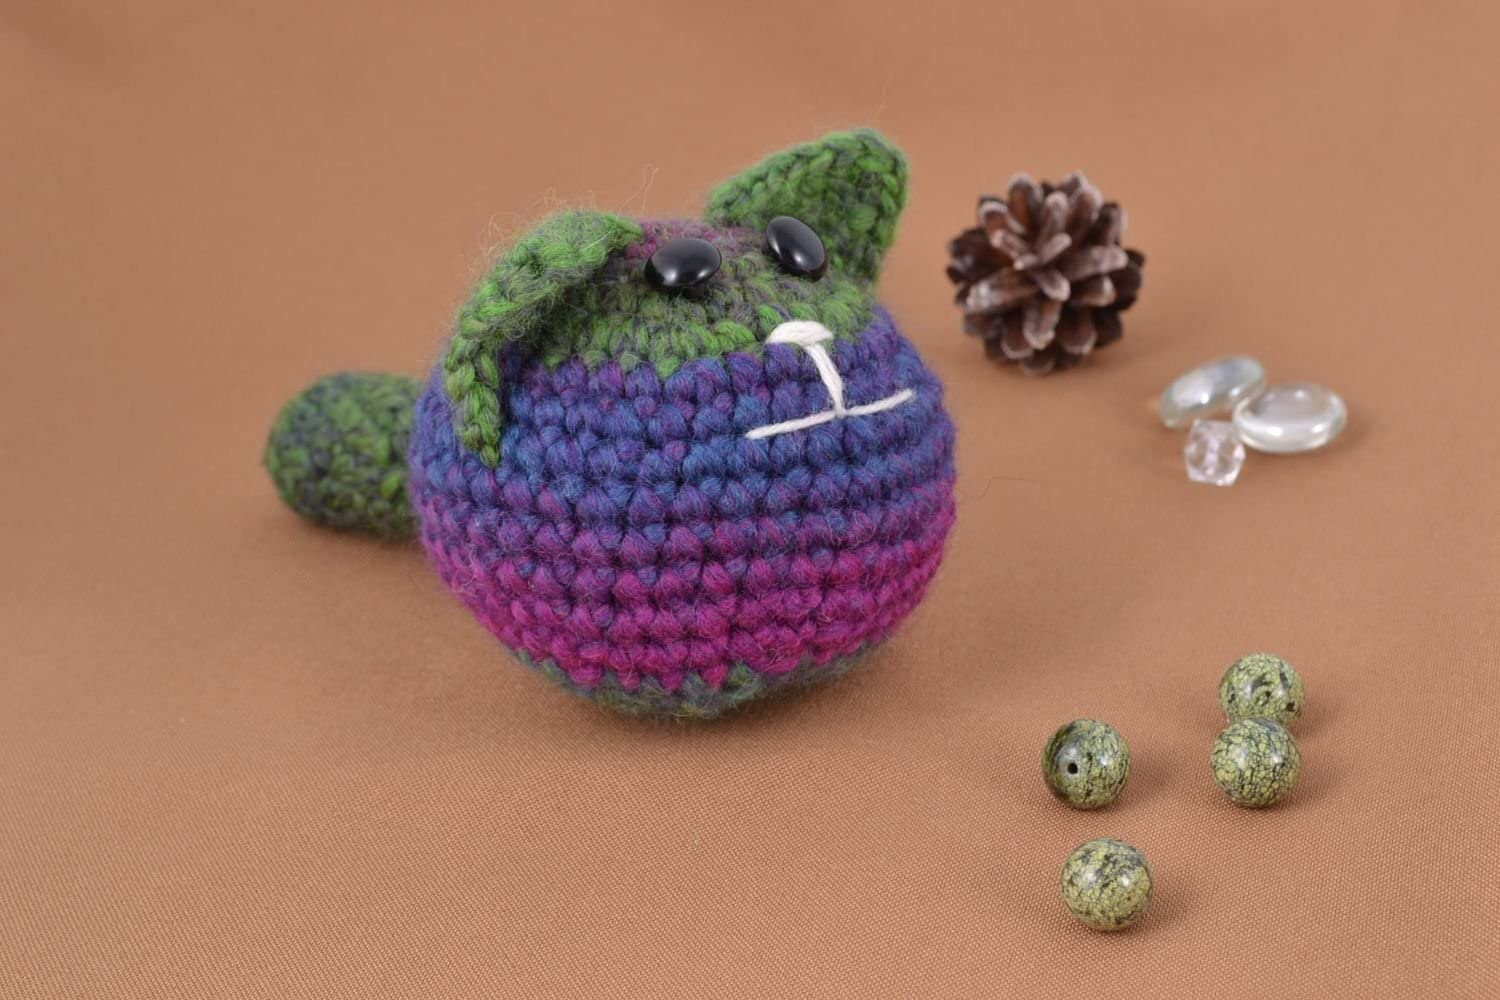 Crocheting toys for cats | 1000x1500